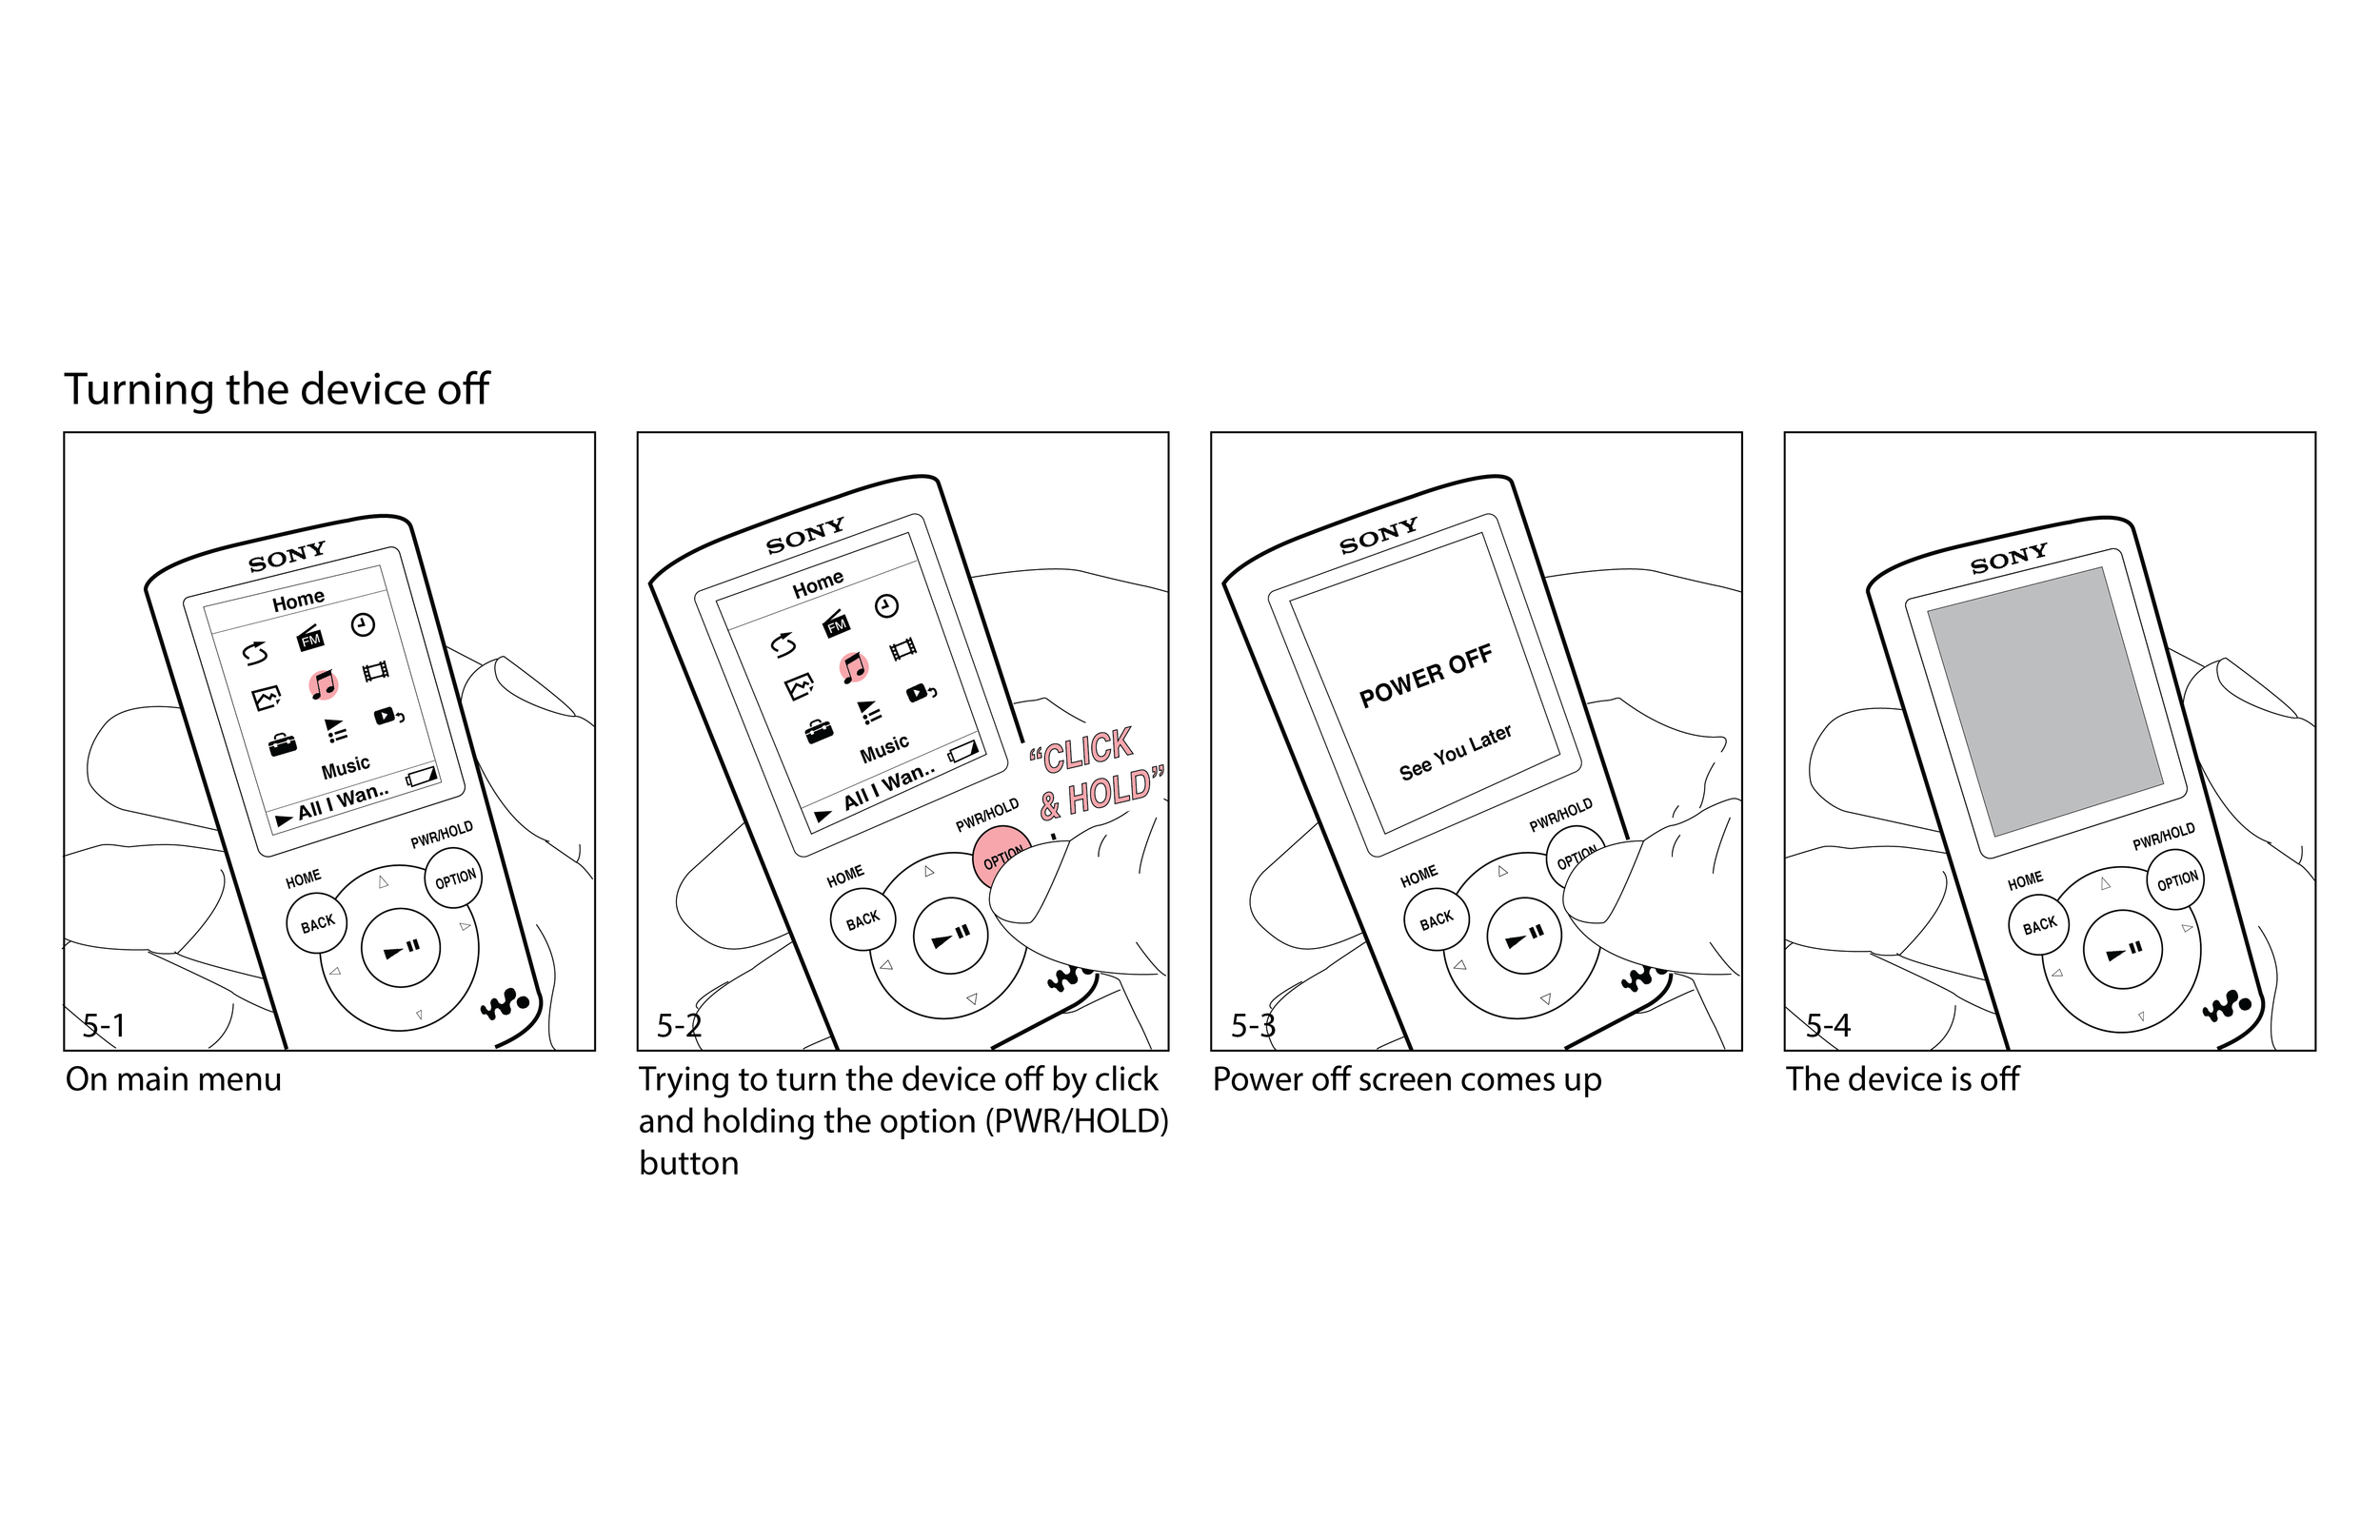 The Storyboard depicts turning off the device. The asset was created for further validation studies comparing prototyping methods.